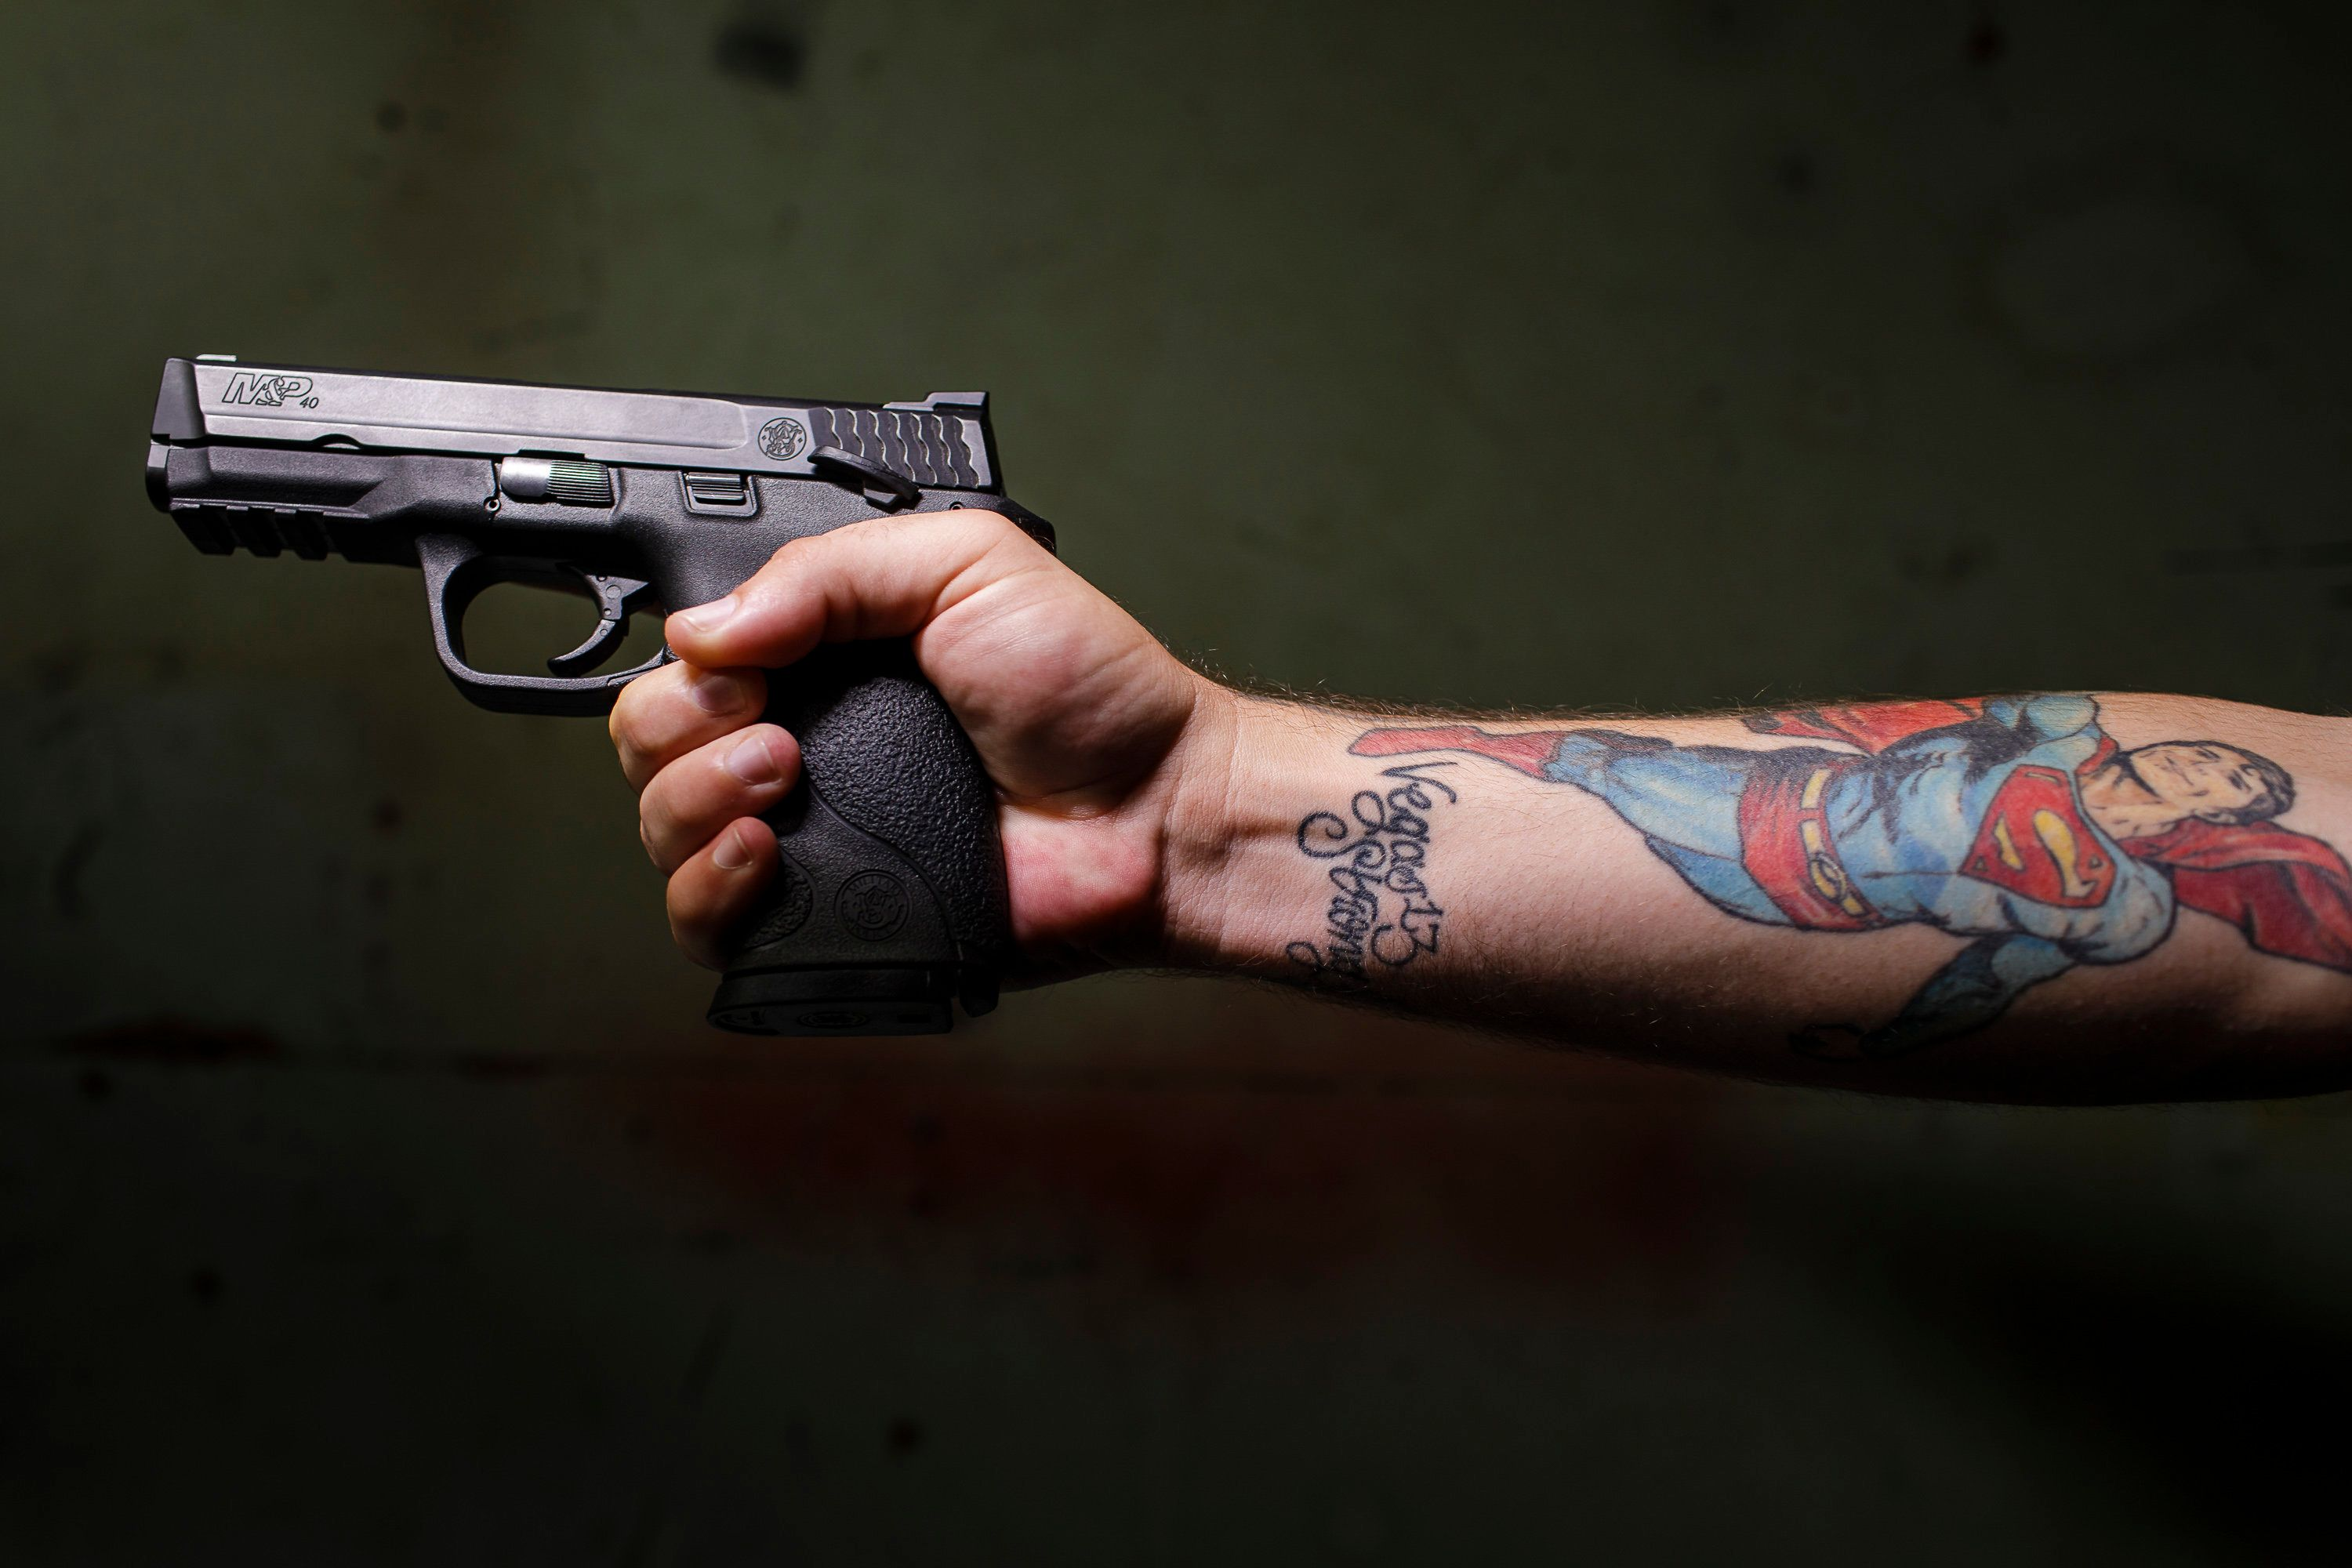 "EUGENE, OR – SEPTEMBER 5th, 2018: Veteran and longtime gun owner Shane Hooper poses for portraits with his Smith & Wesson M&P 40 at his home in Eugene, OR.  Hooper has been trying (unsuccessfully) to get rid of the two guns he currently owns after surviving the 2017 Las Vegas shooting at the Route 91 Harvest music festival on the Las Vegas Strip in Nevada, that left 58 people dead and 851 injured. Hooper got a ""Vegas Strong"" tattoo two weeks after the shooting. CREDIT: Leah Nash for The Huffington Post"